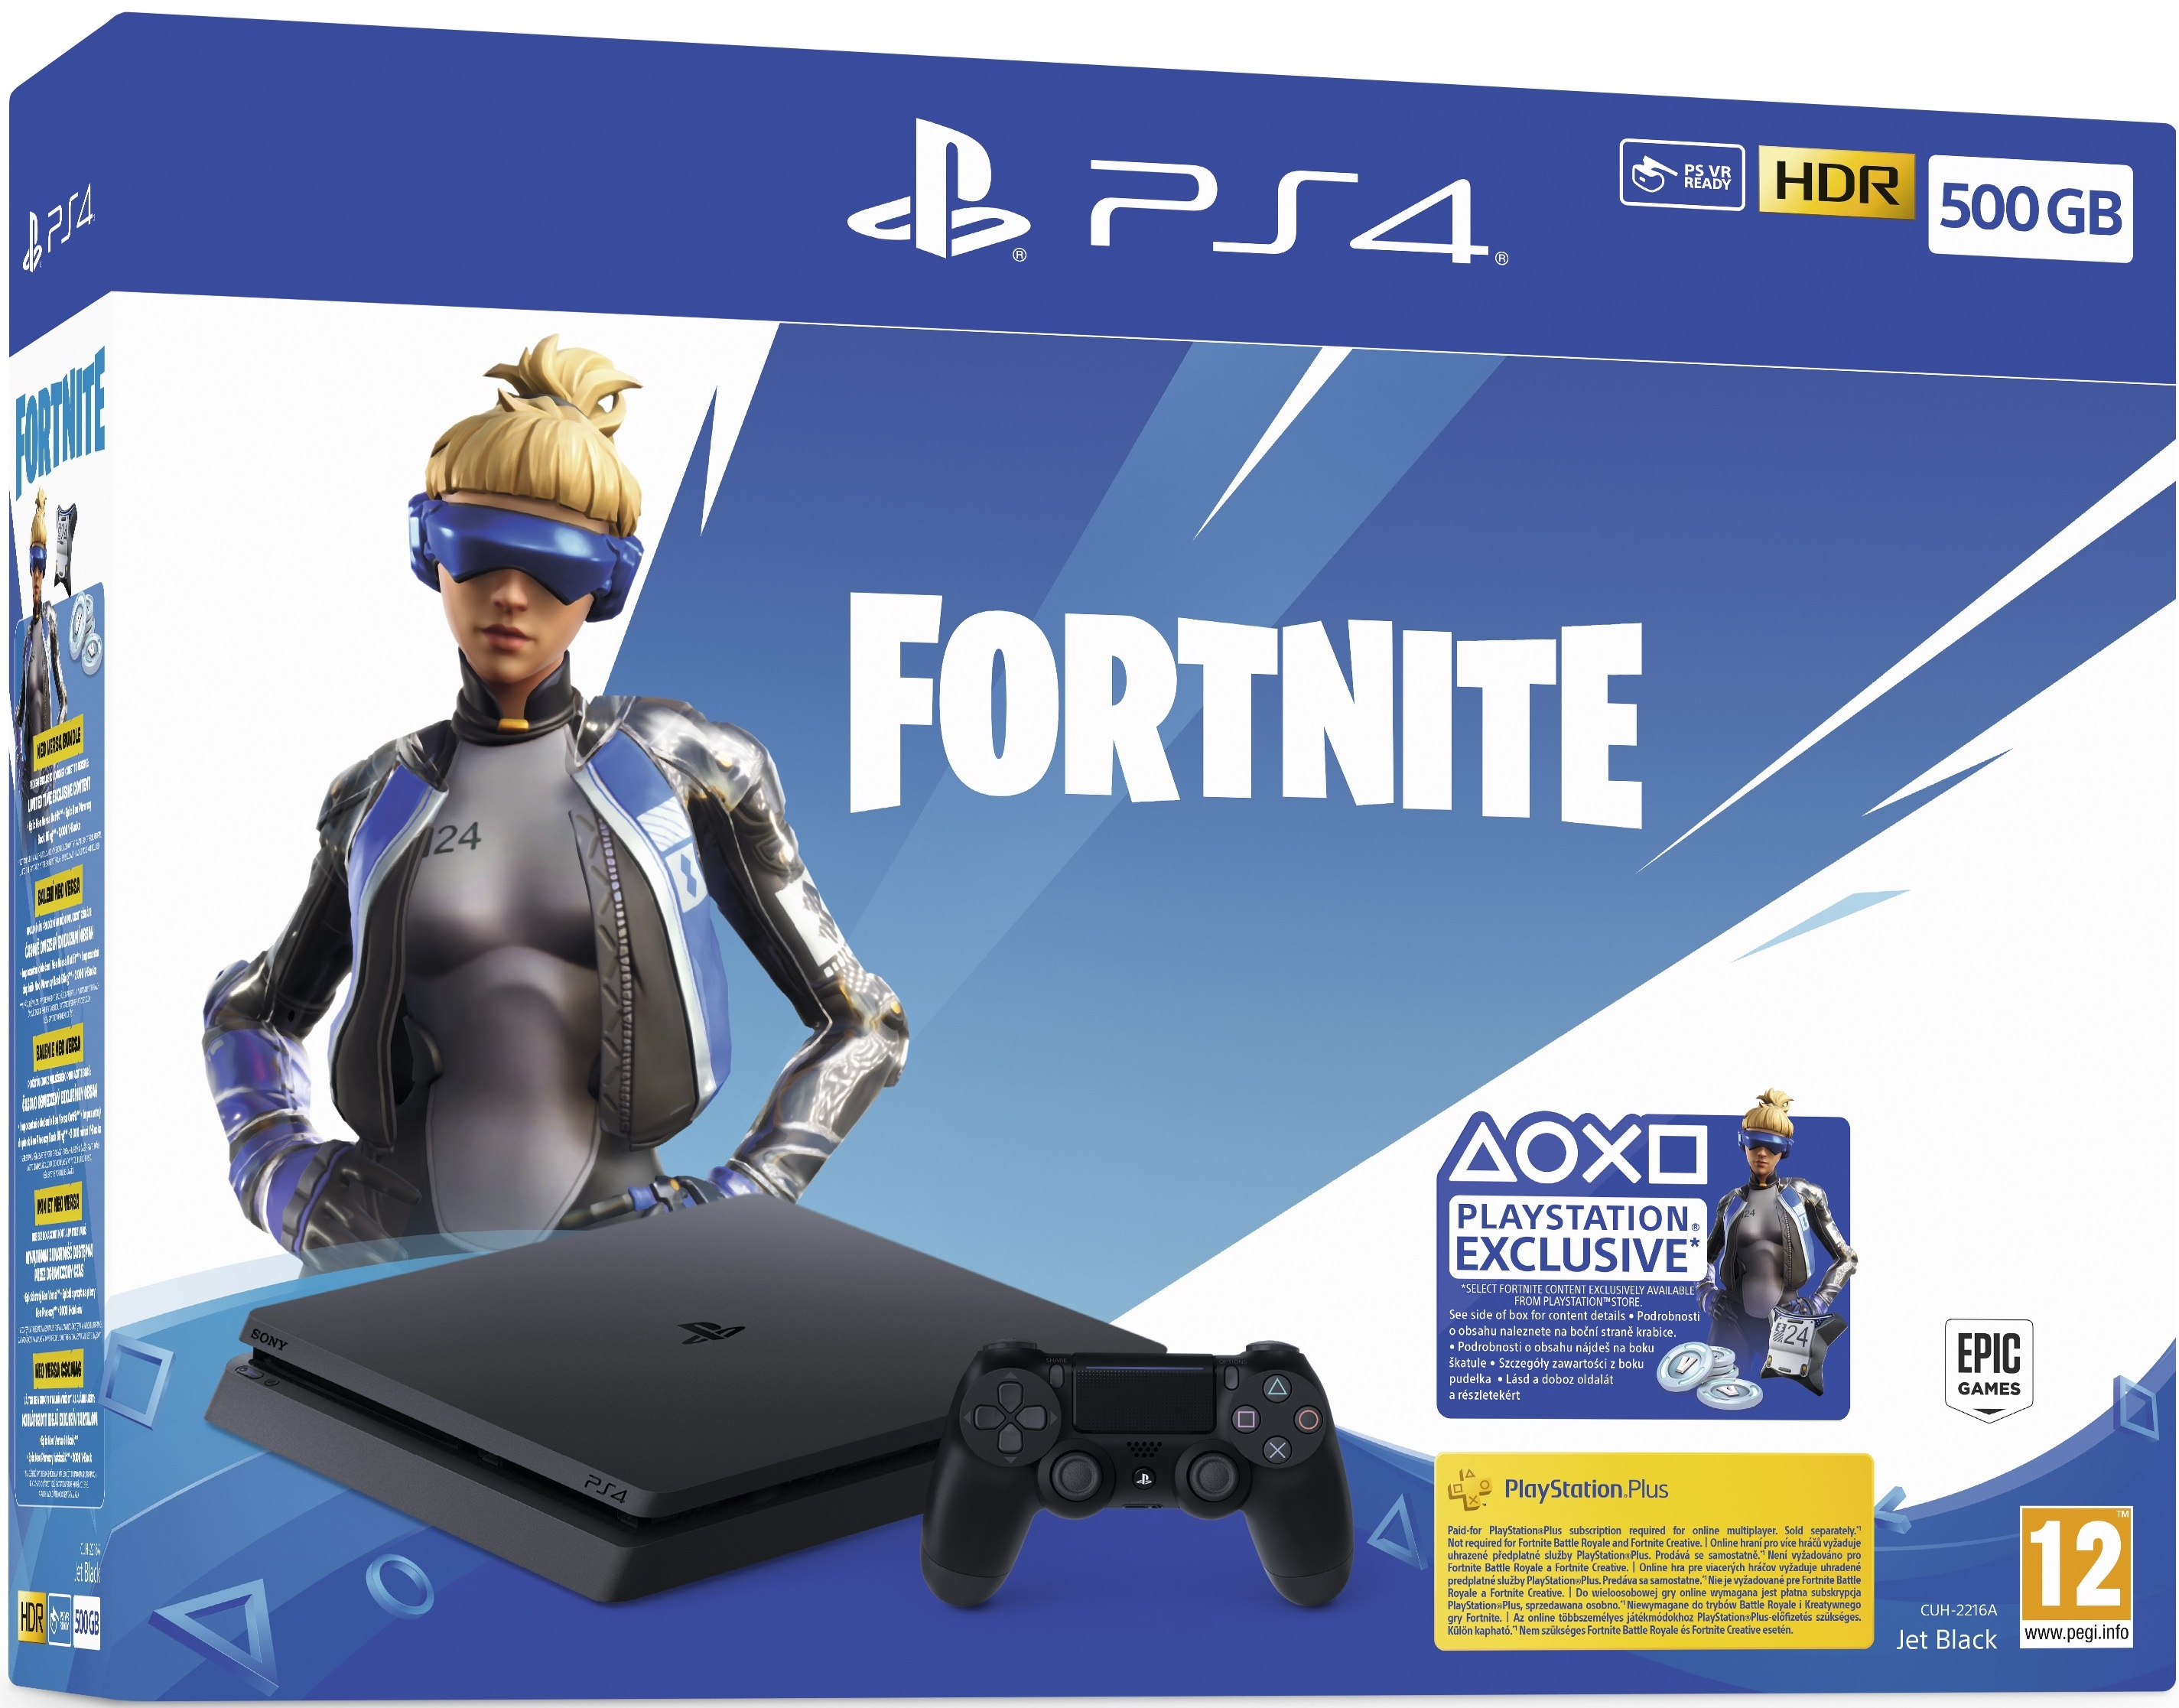 Sony Playstation 4 Slim 500 GB Fortnite Neo Versa Bundle - PlayStation 4 Gépek